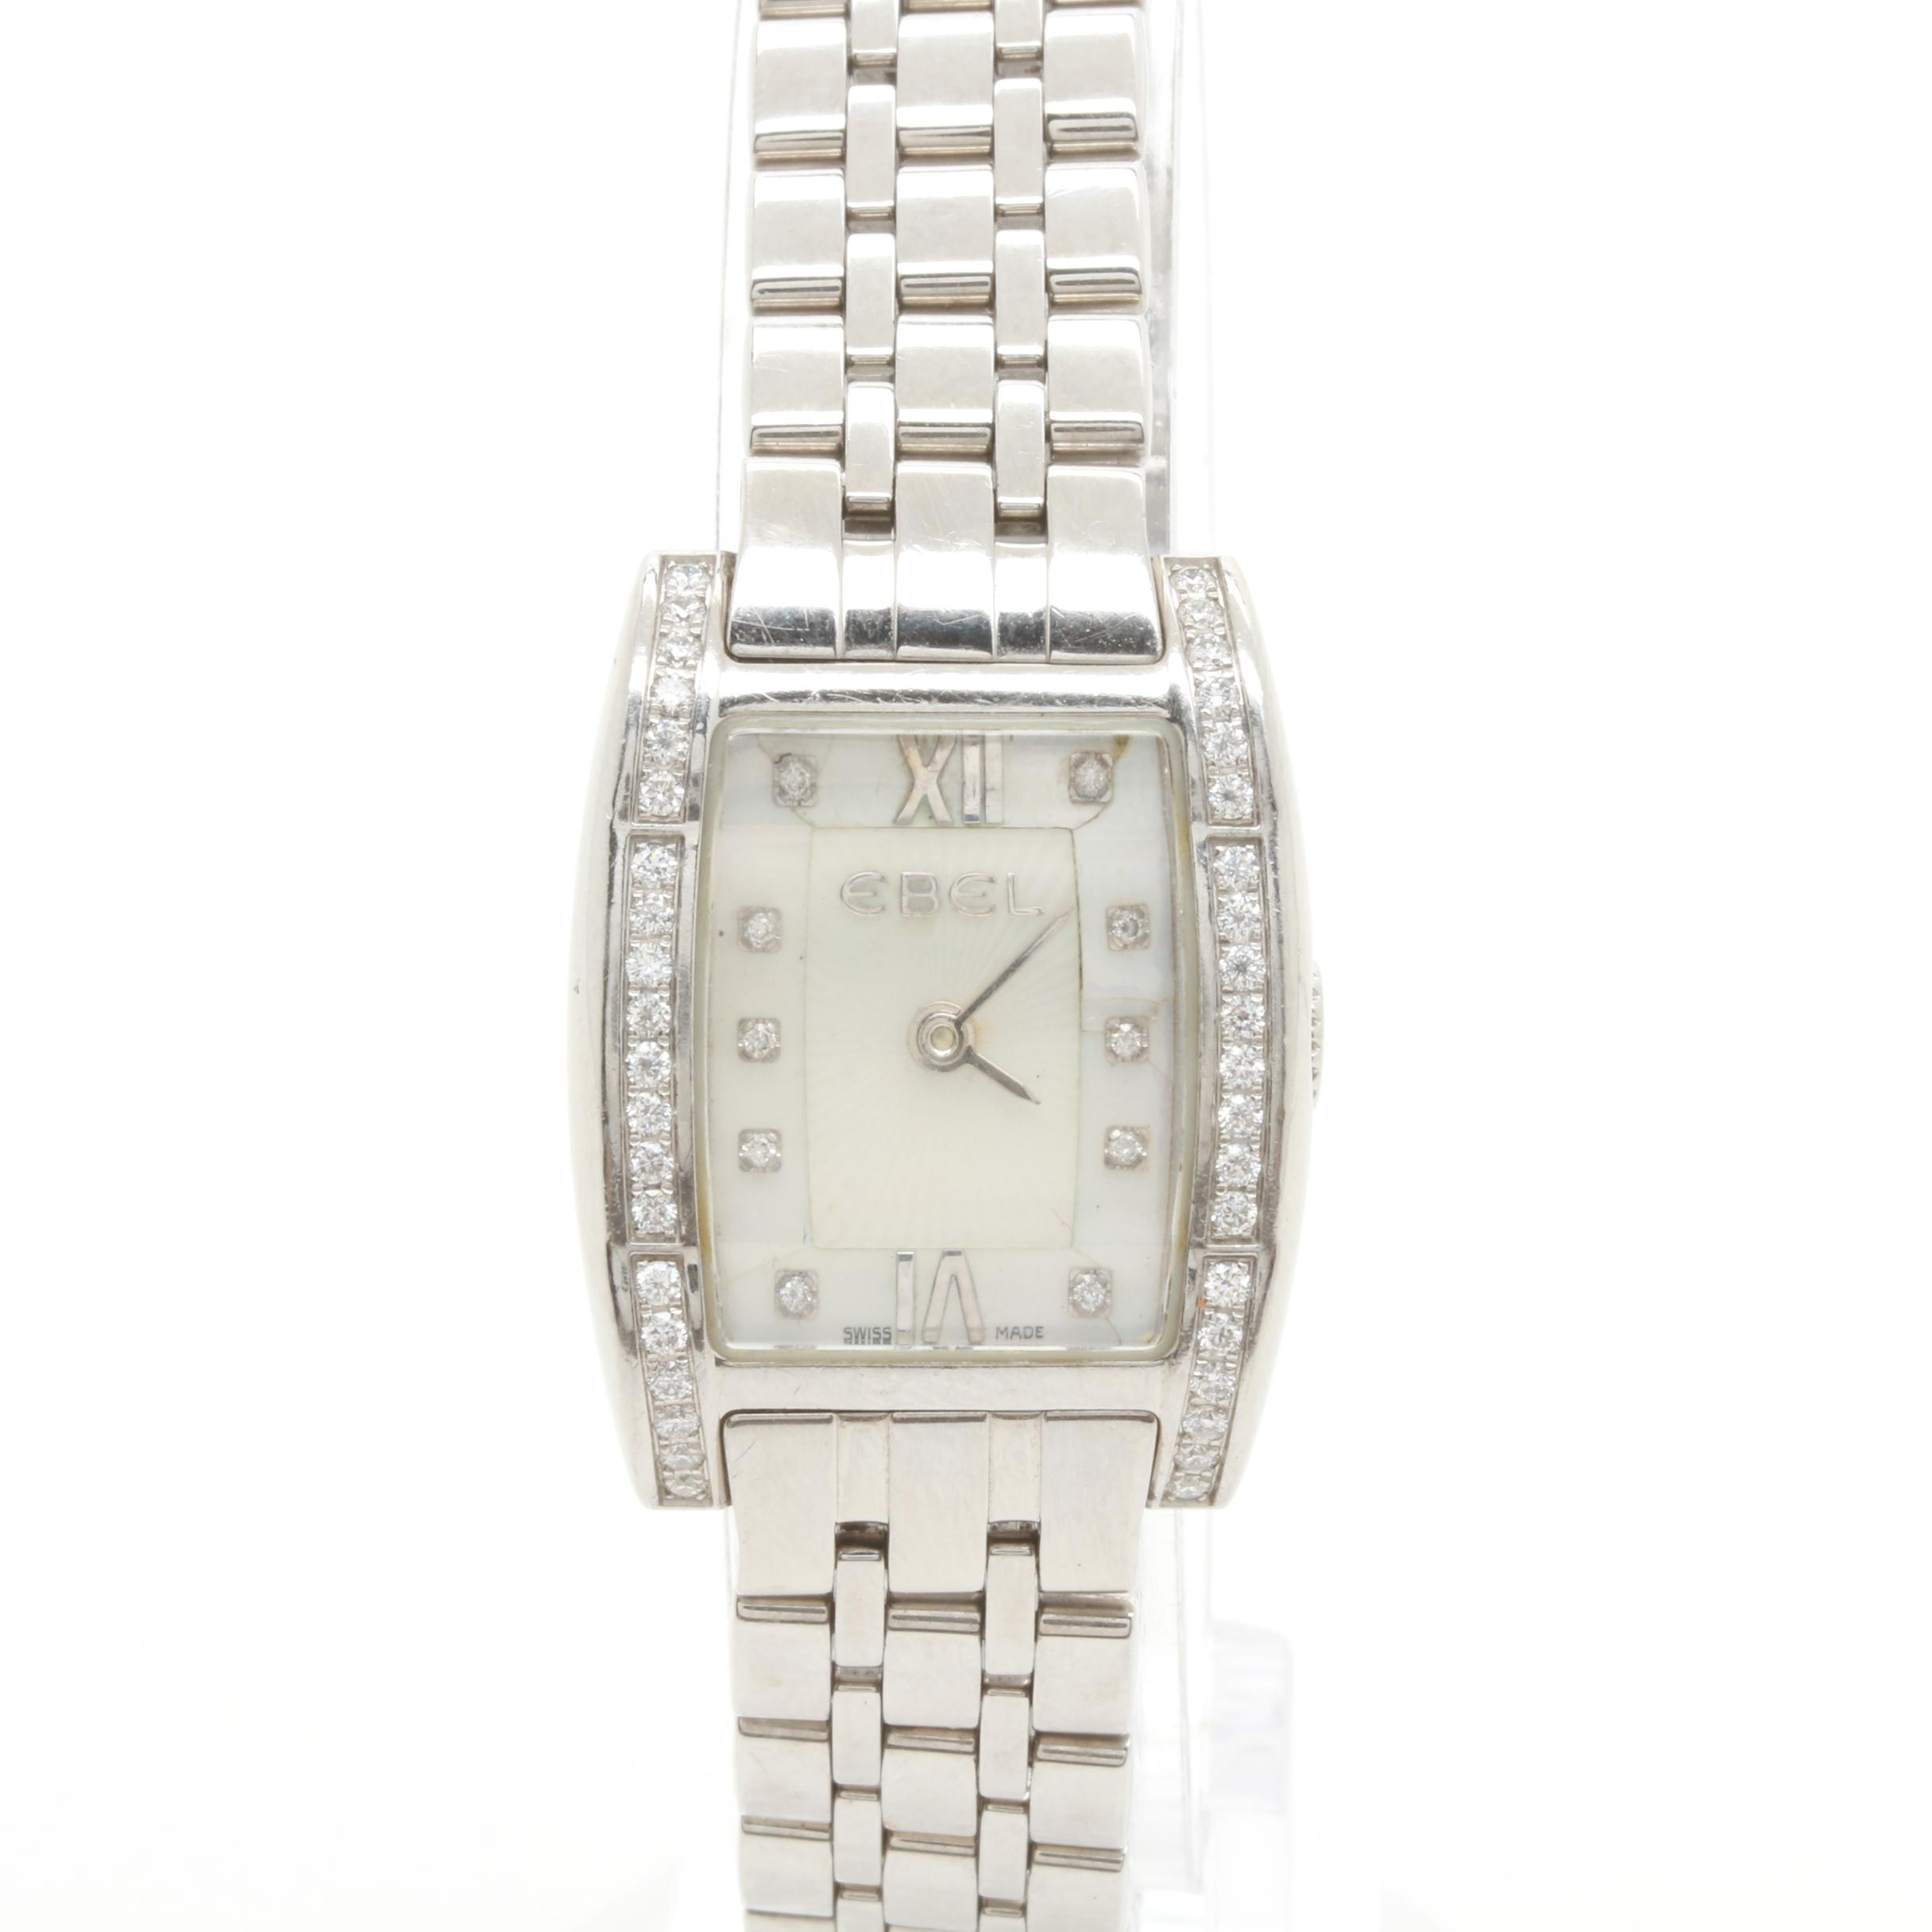 "Ebel ""Tarawa"" Stainless Steel Diamond and Mother of Pearl Wristwatch"